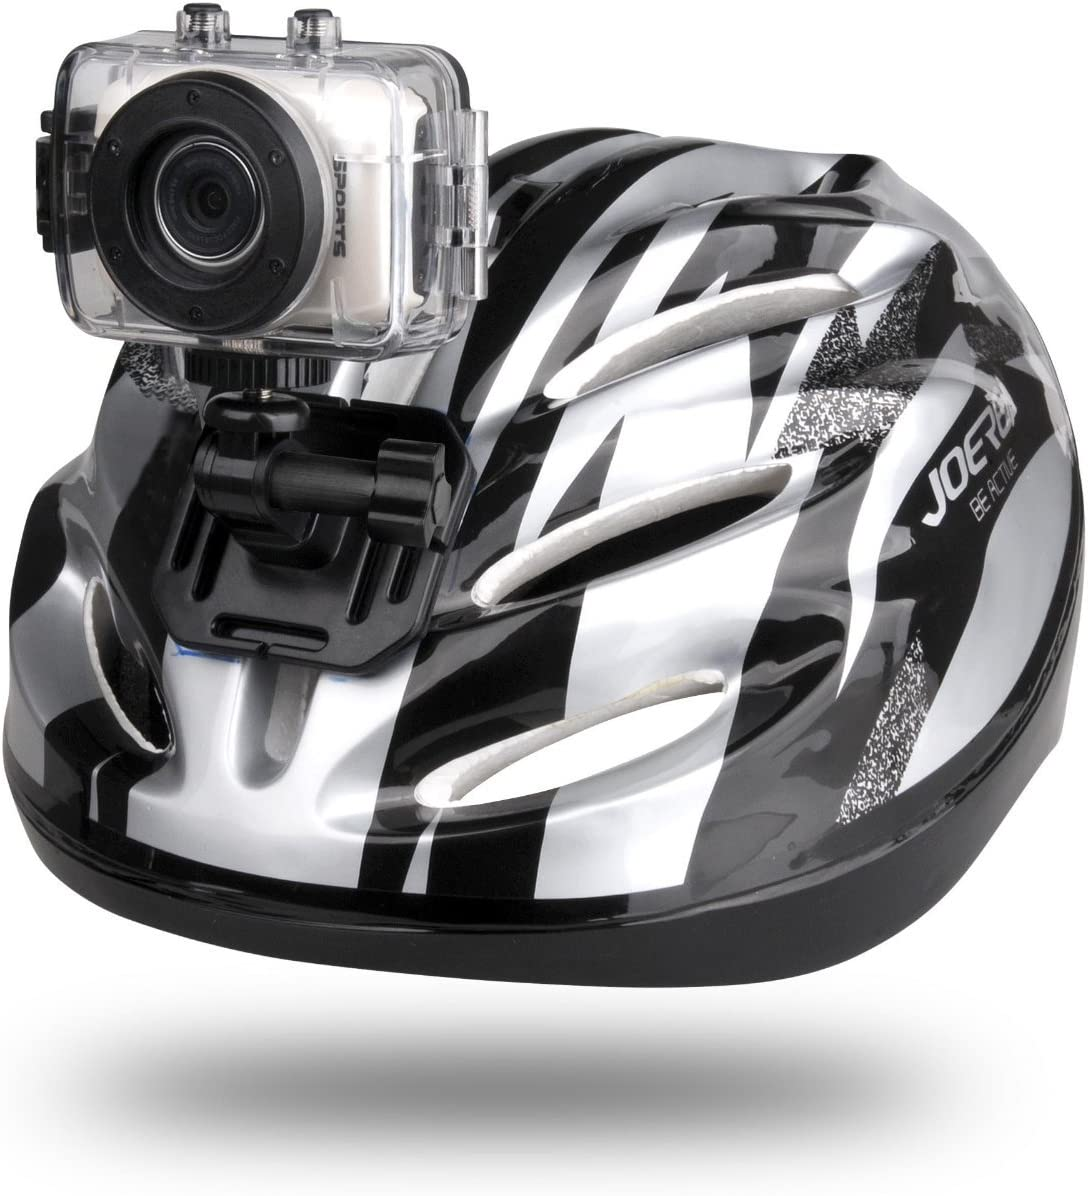 Super sale period wholesale limited Gear Pro High-Definition Sport Action 720p 1080p Wide-An Camera